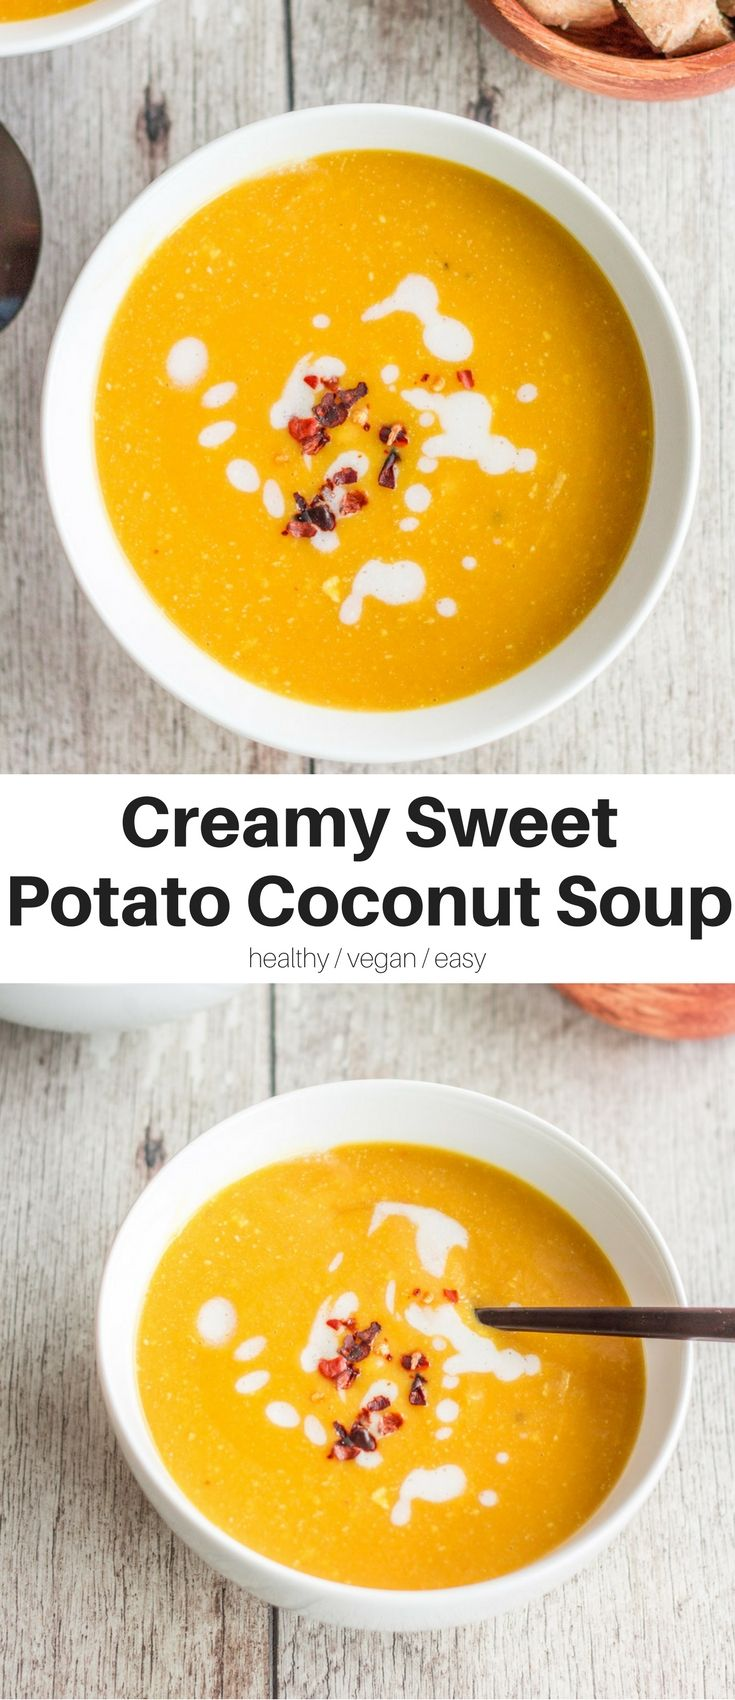 EASY Creamy Sweet Potato Coconut Soup with a hint of chili. Super easy & quick, healthy, warming, and SO delicious. The perfect vegan dinner! #healthy #vegan #dinner #recipes